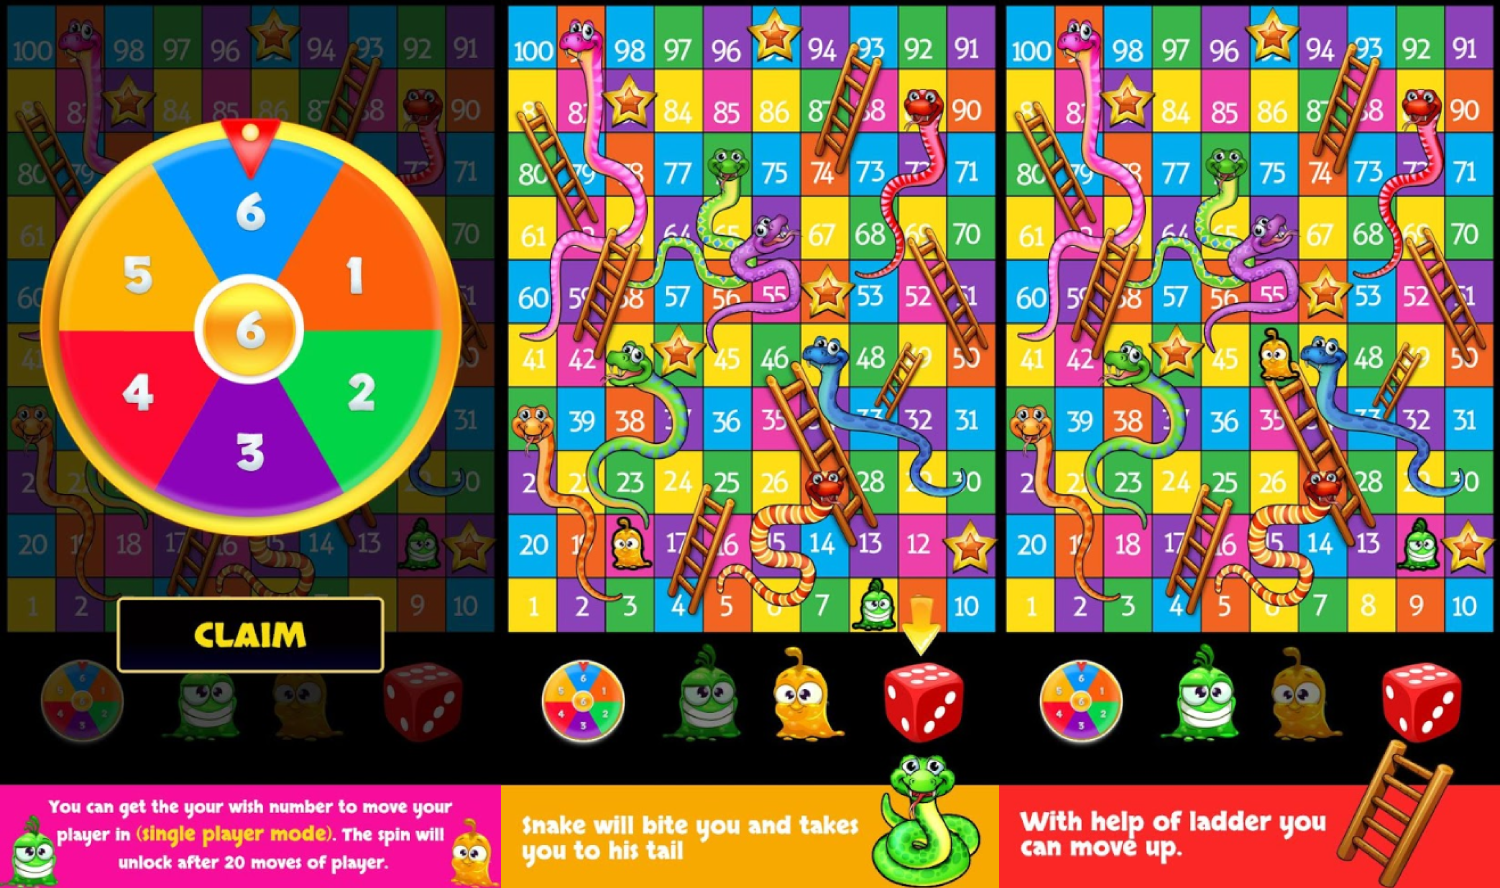 Best Snakes and Ladders Games for Android